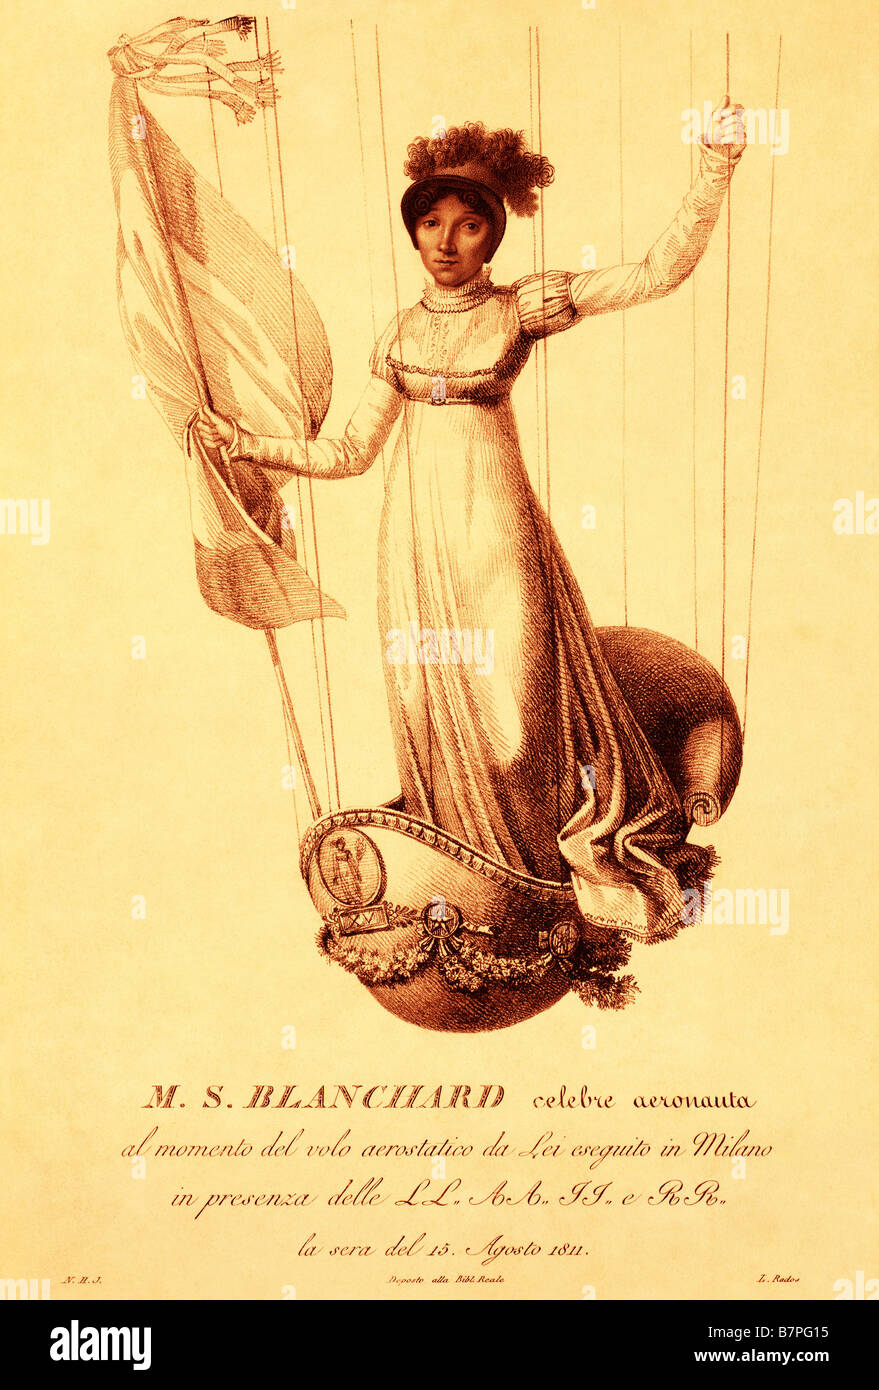 sketch of  Sophie Blanchard first professional woman balloon pilot 1800s Stock Photo